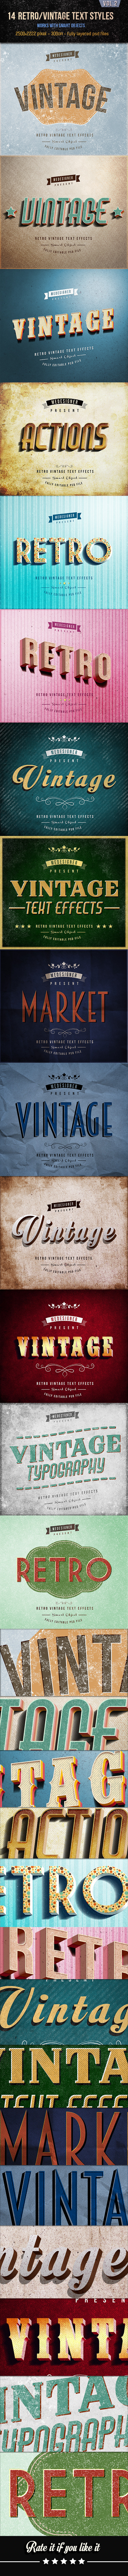 14 Retro / Vintage Text Effects V.2 - Text Effects Actions